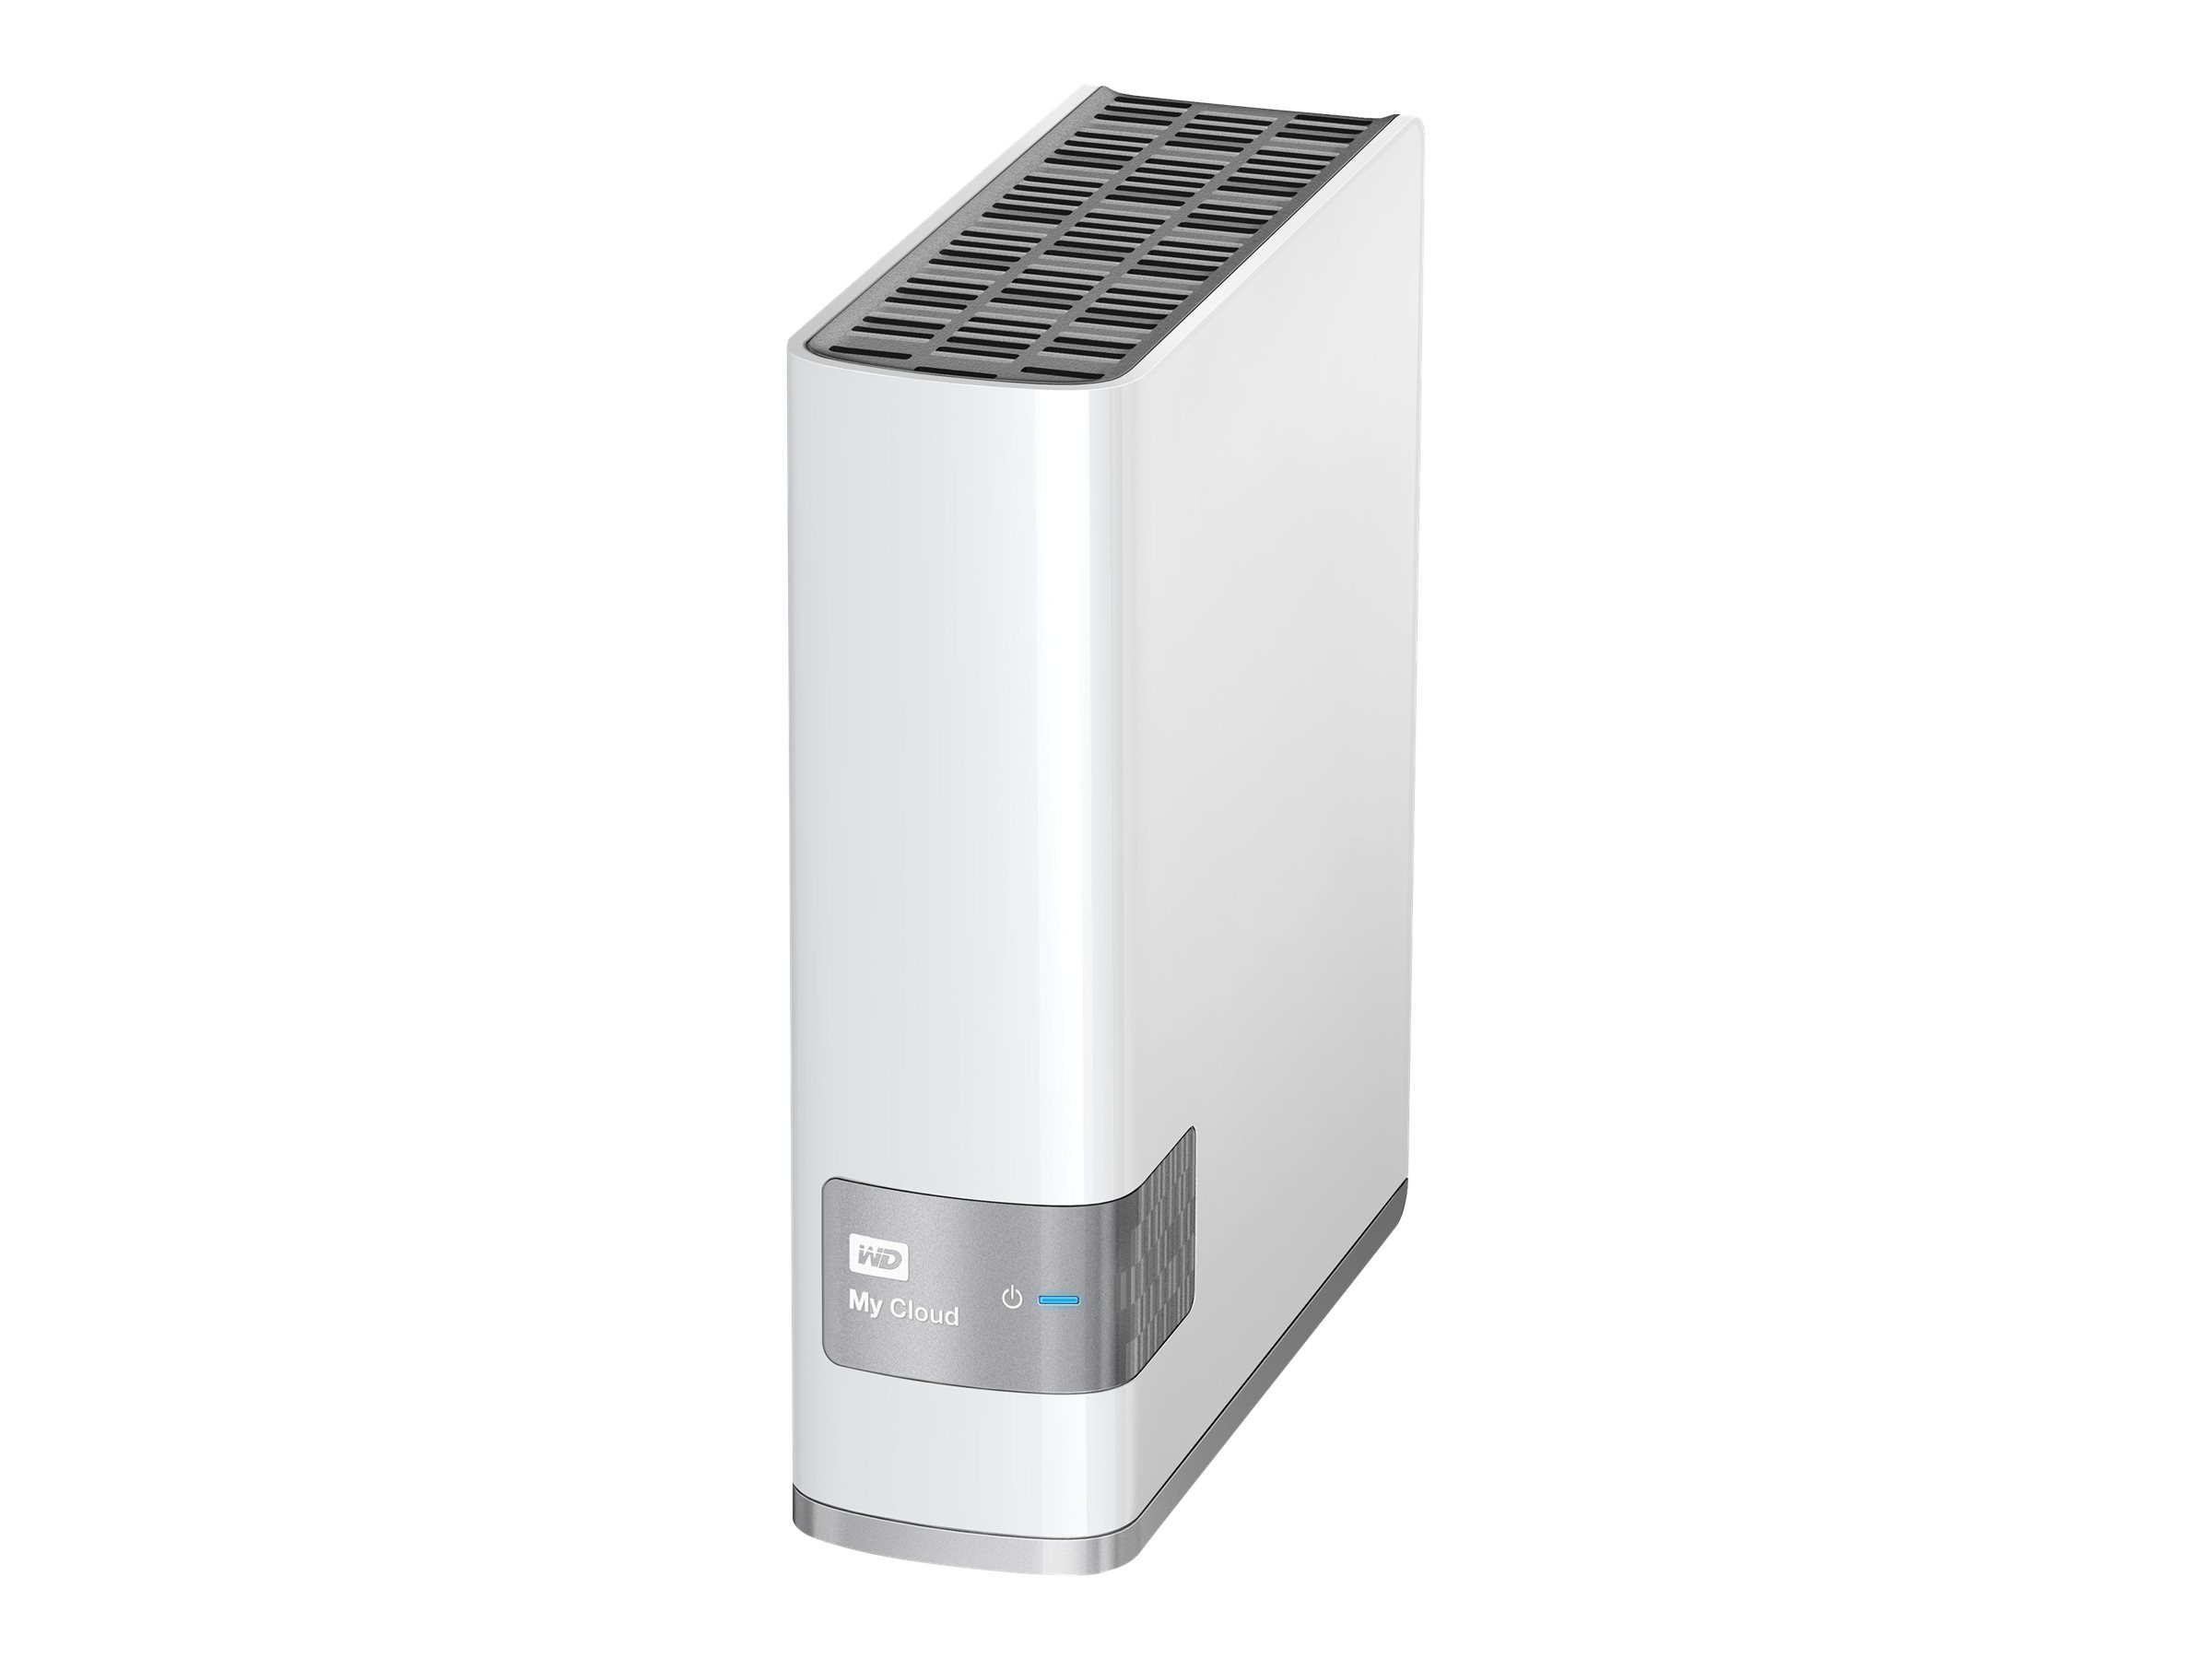 WD 8TB My Cloud Personal Cloud Storage